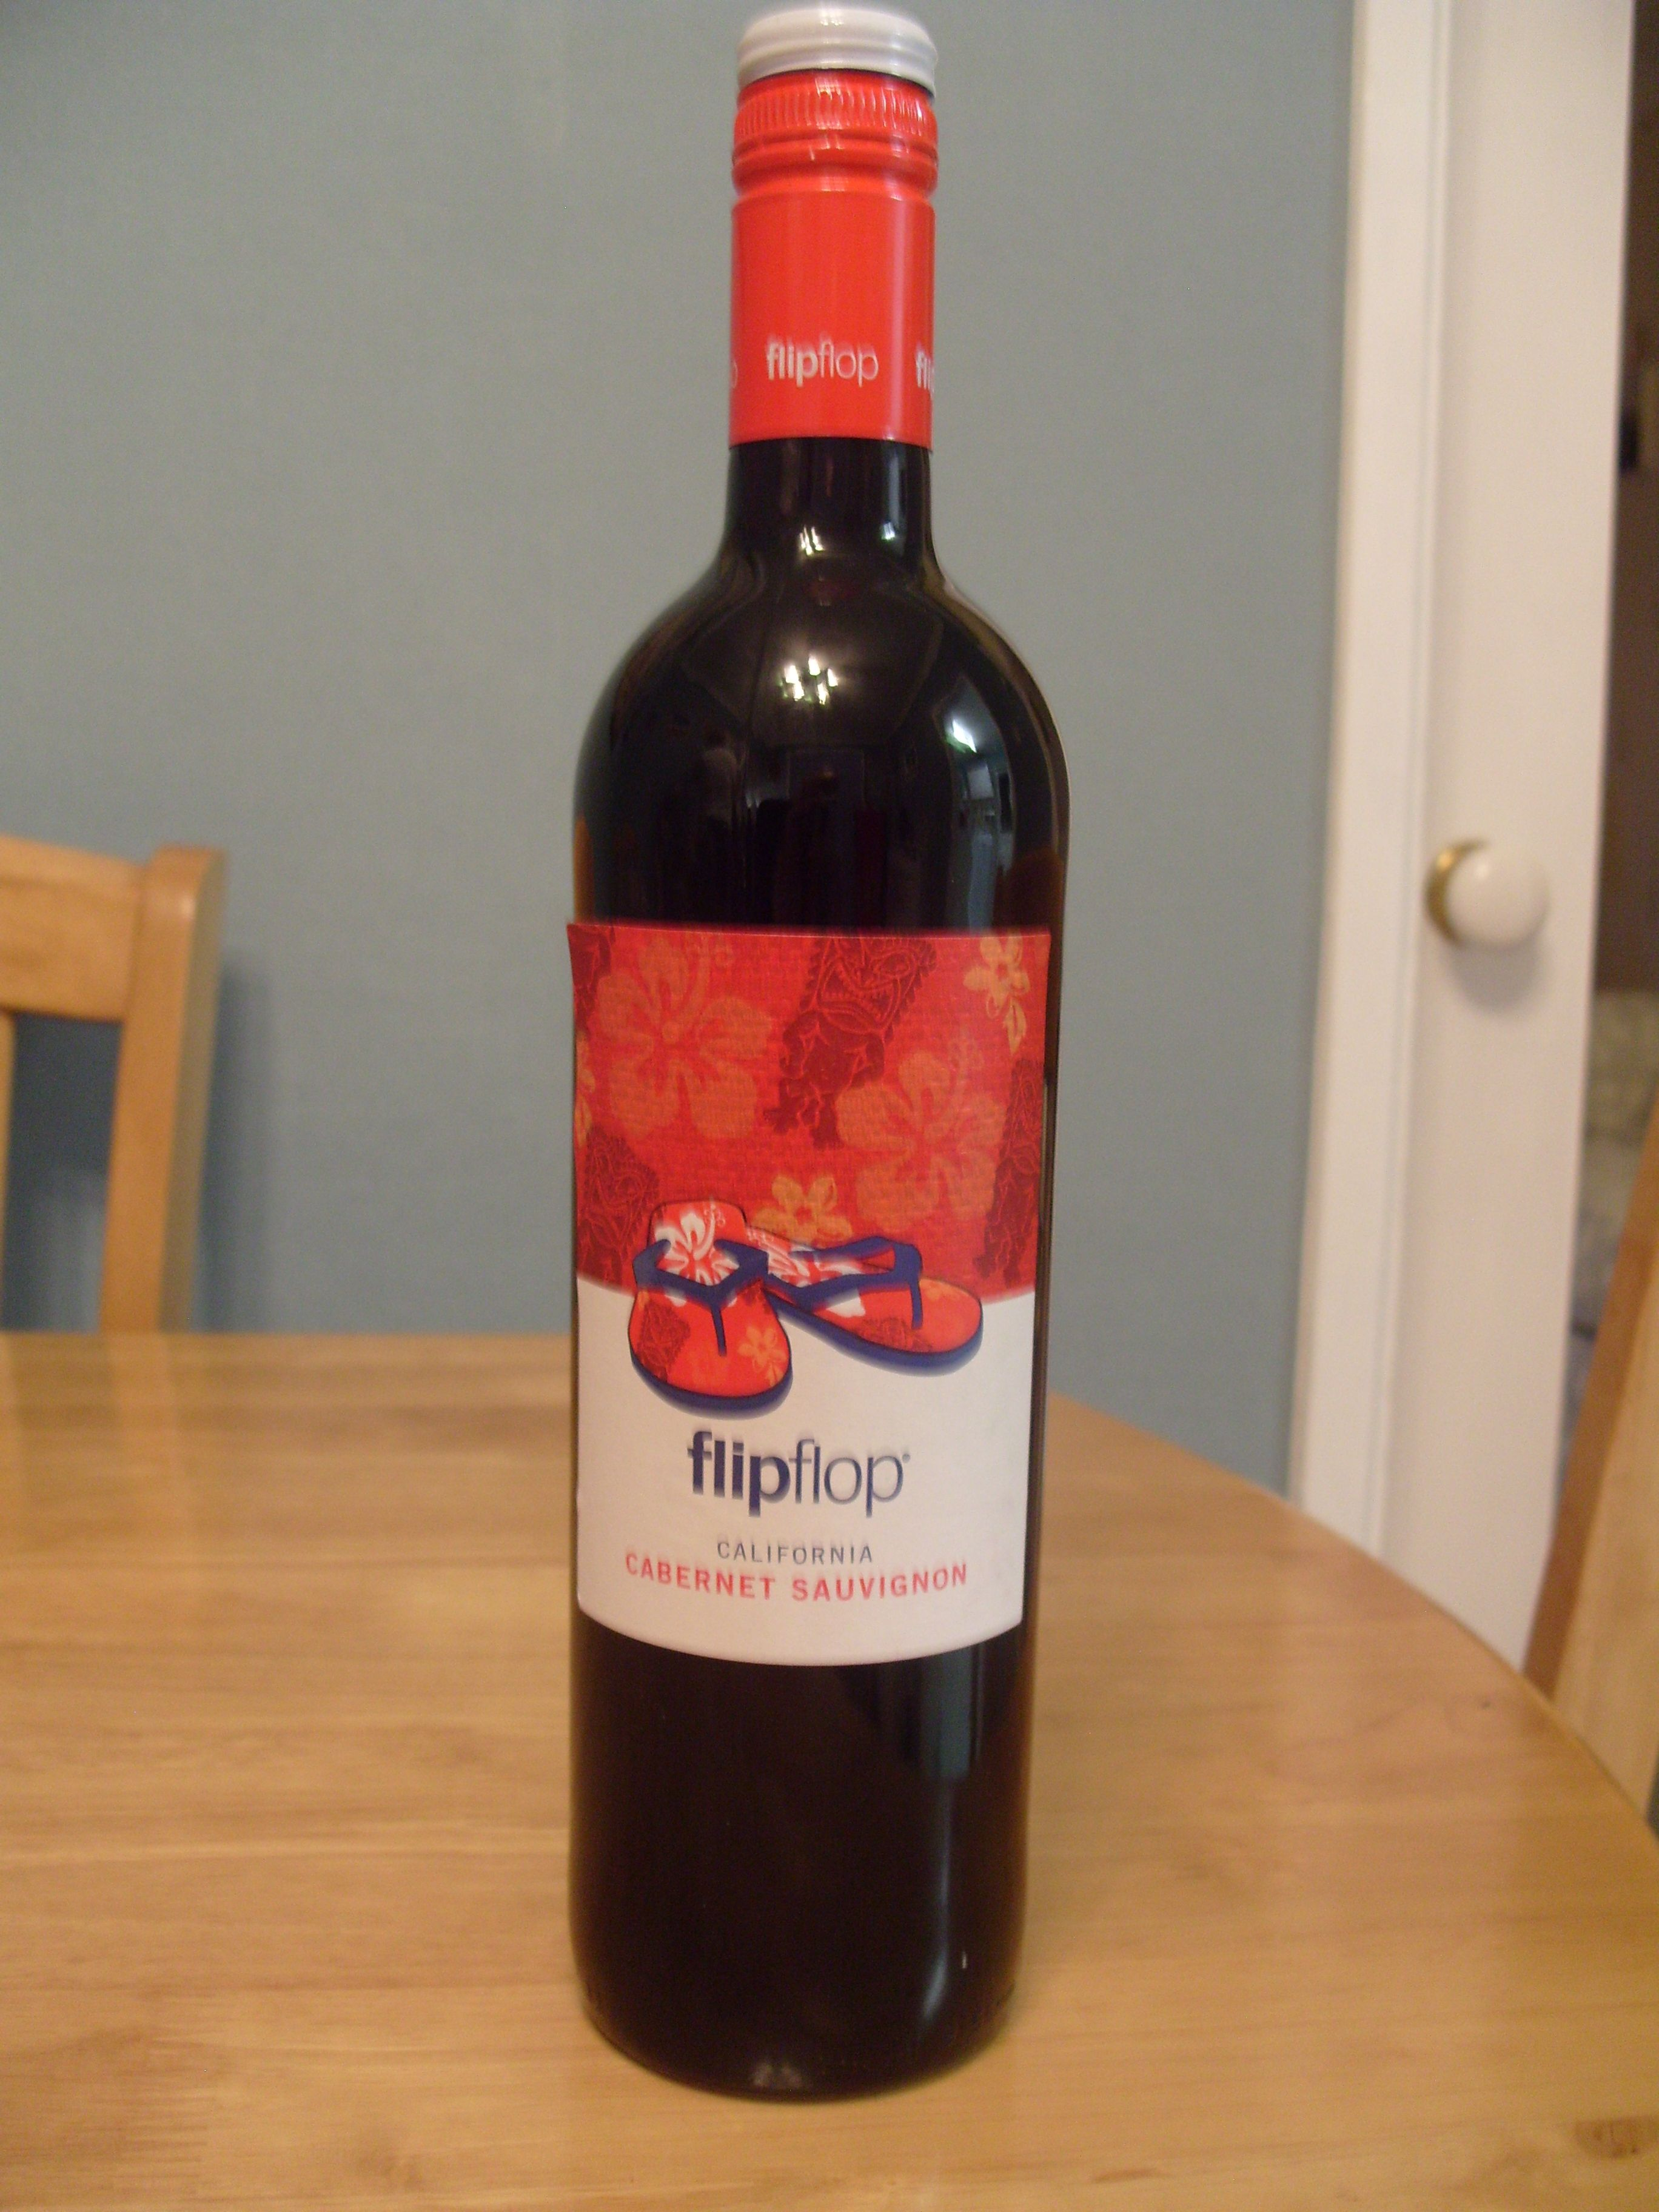 To Go With My Flip Flops Wine Bottle Alcoholic Drinks Red Wine